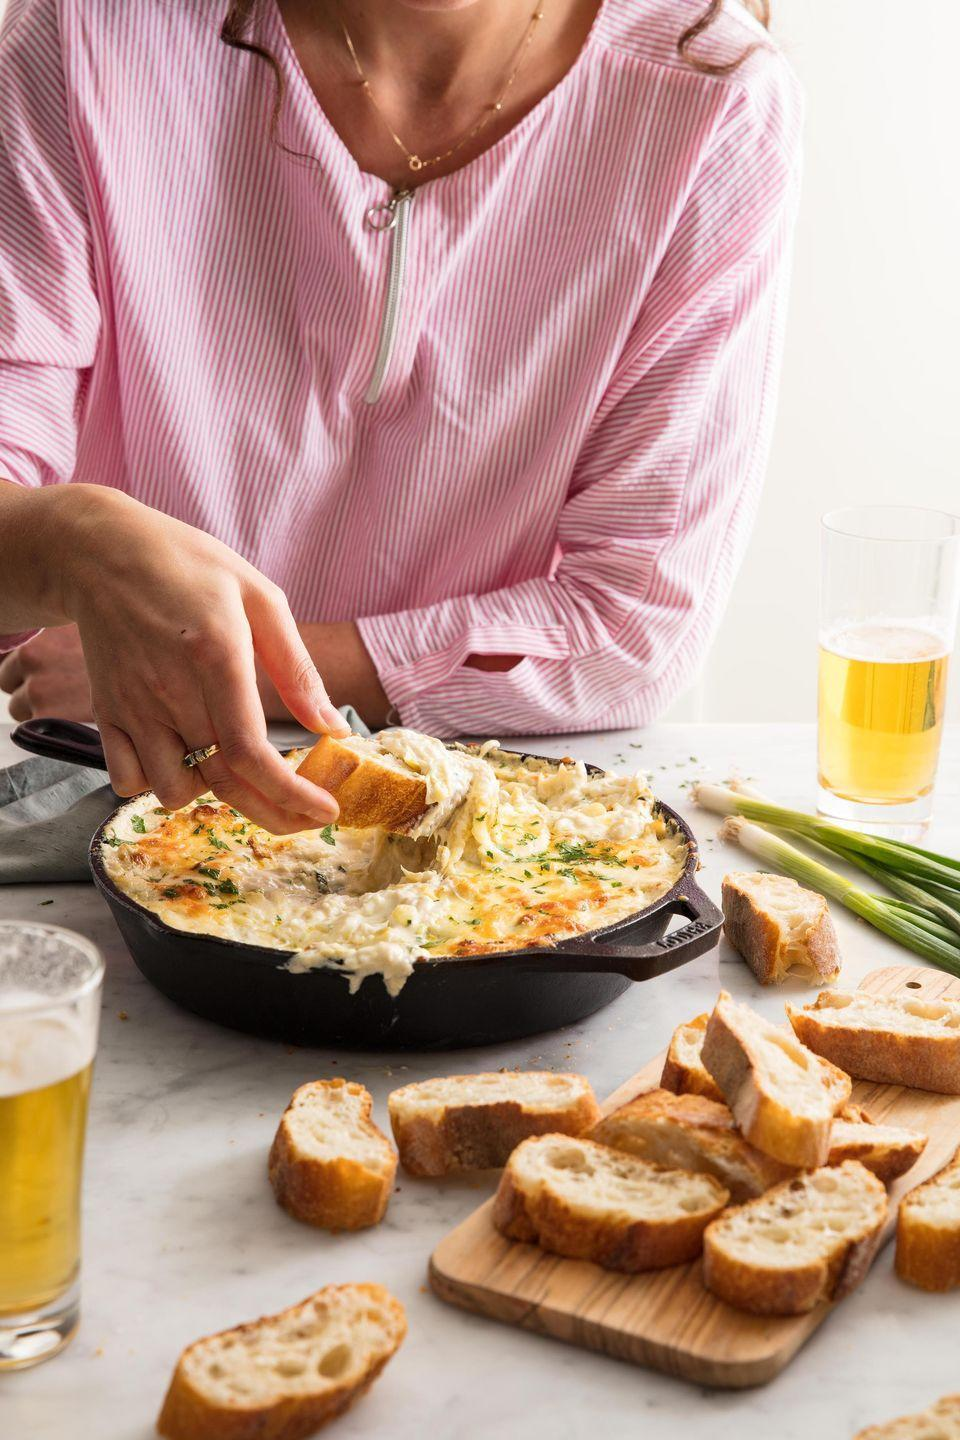 "<p>It's the classy AF dip that'll slay your party.</p><p>Get the recipe from <a href=""/cooking/recipe-ideas/recipes/a49883/crab-artichoke-dip-recipe/"" data-ylk=""slk:Delish"" class=""link rapid-noclick-resp"">Delish</a>.</p>"